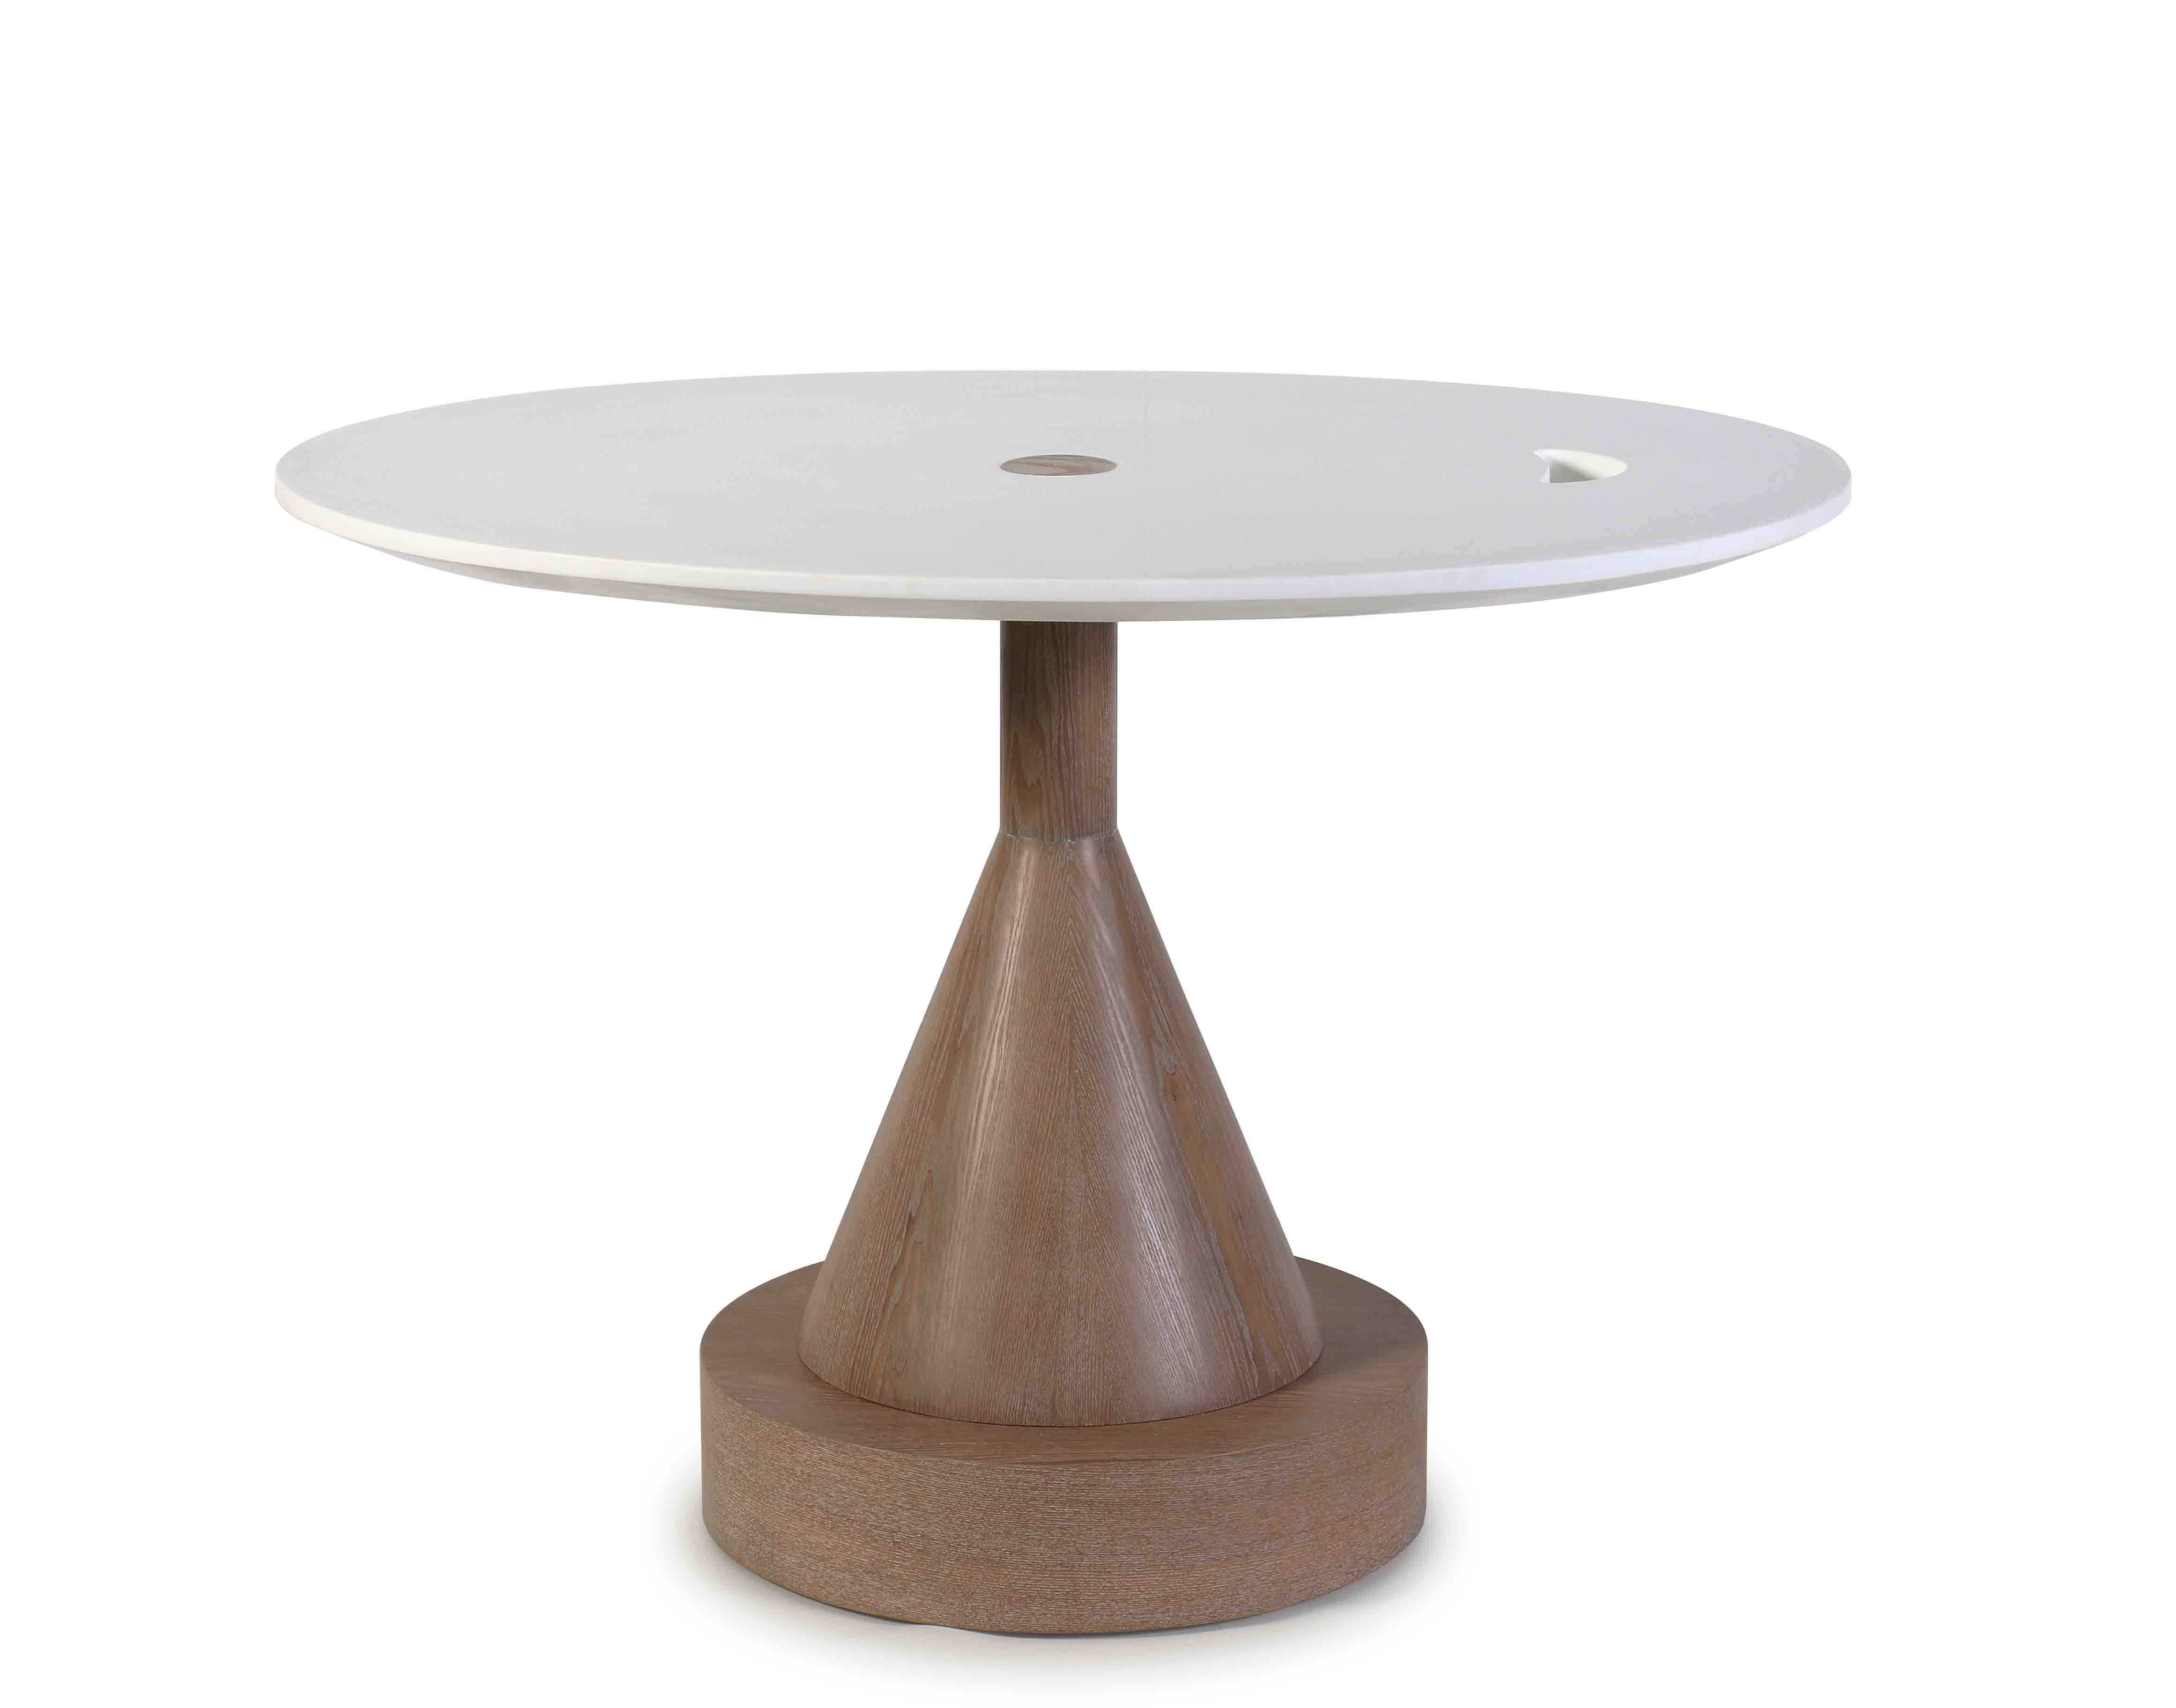 OCASSIONAL TABLE DT-7693A